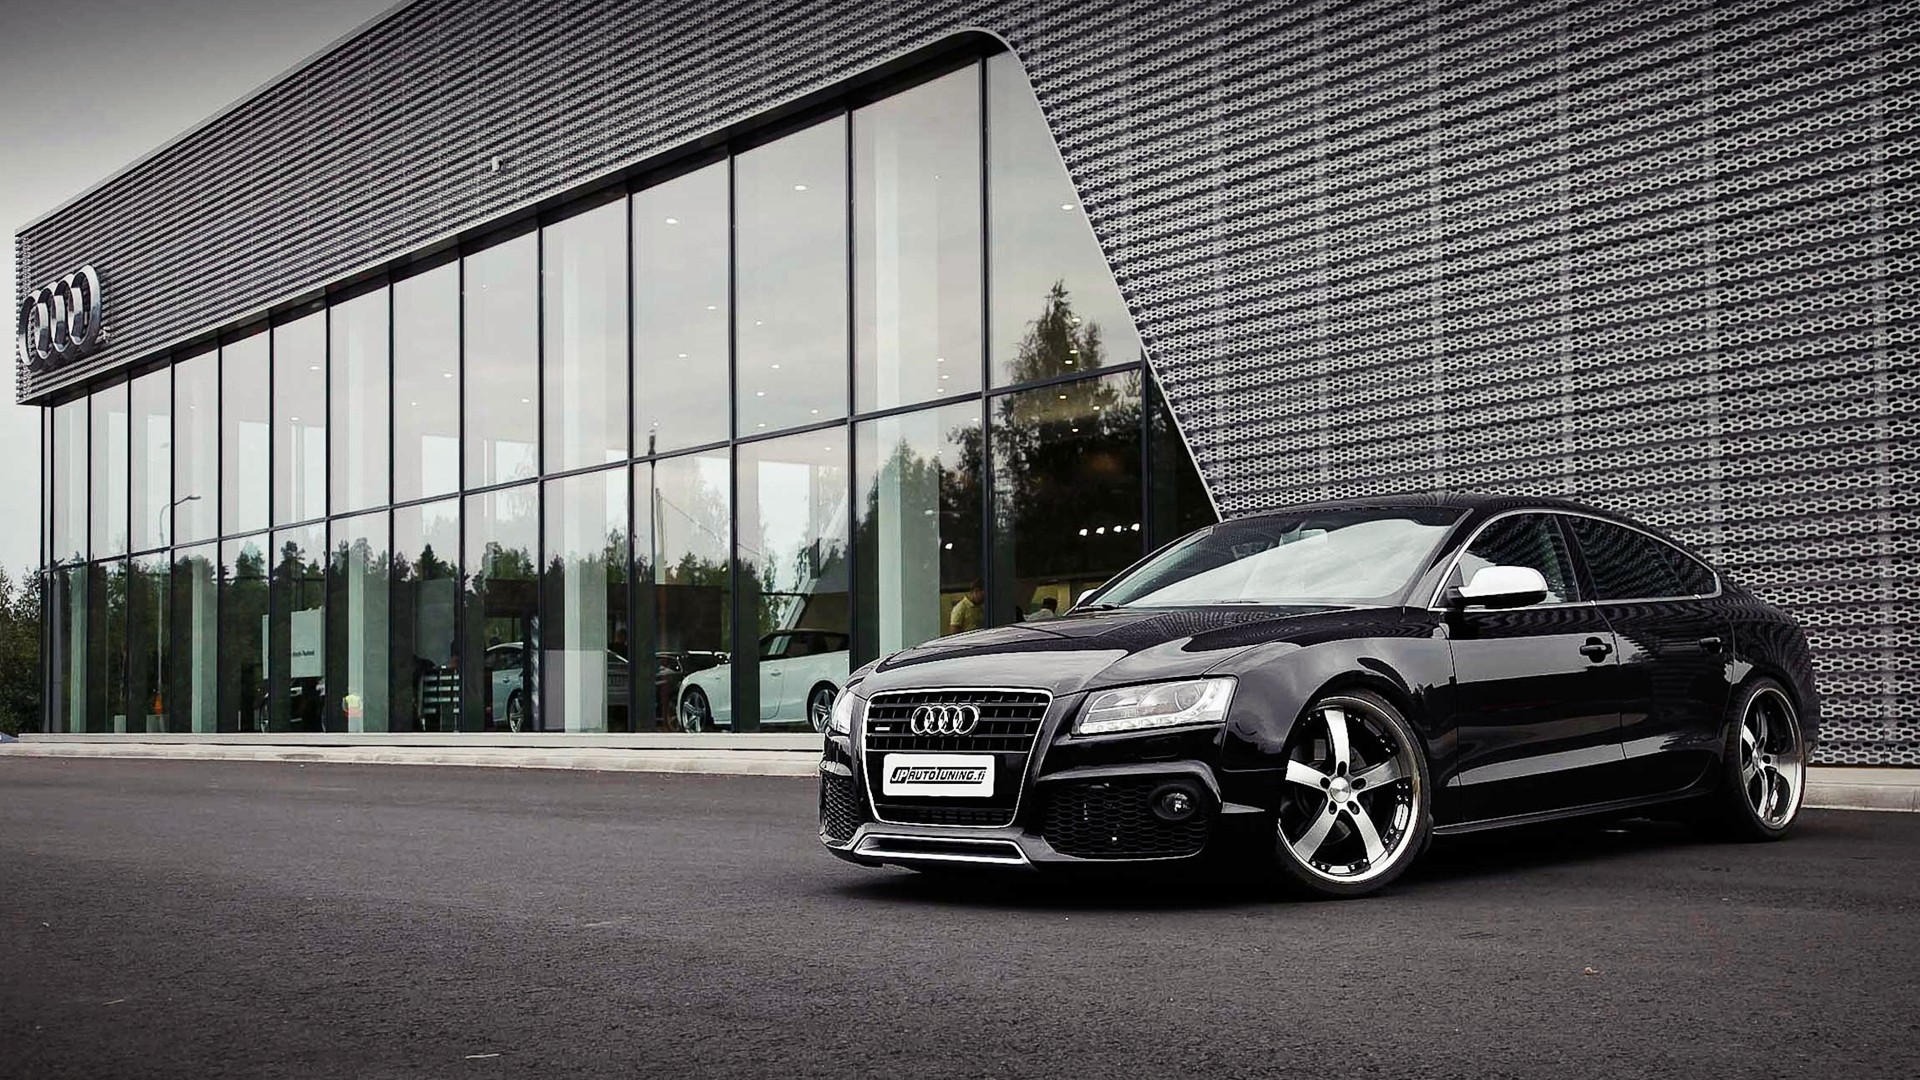 1920x1080 Awesome Audi RS5 Wallpaper